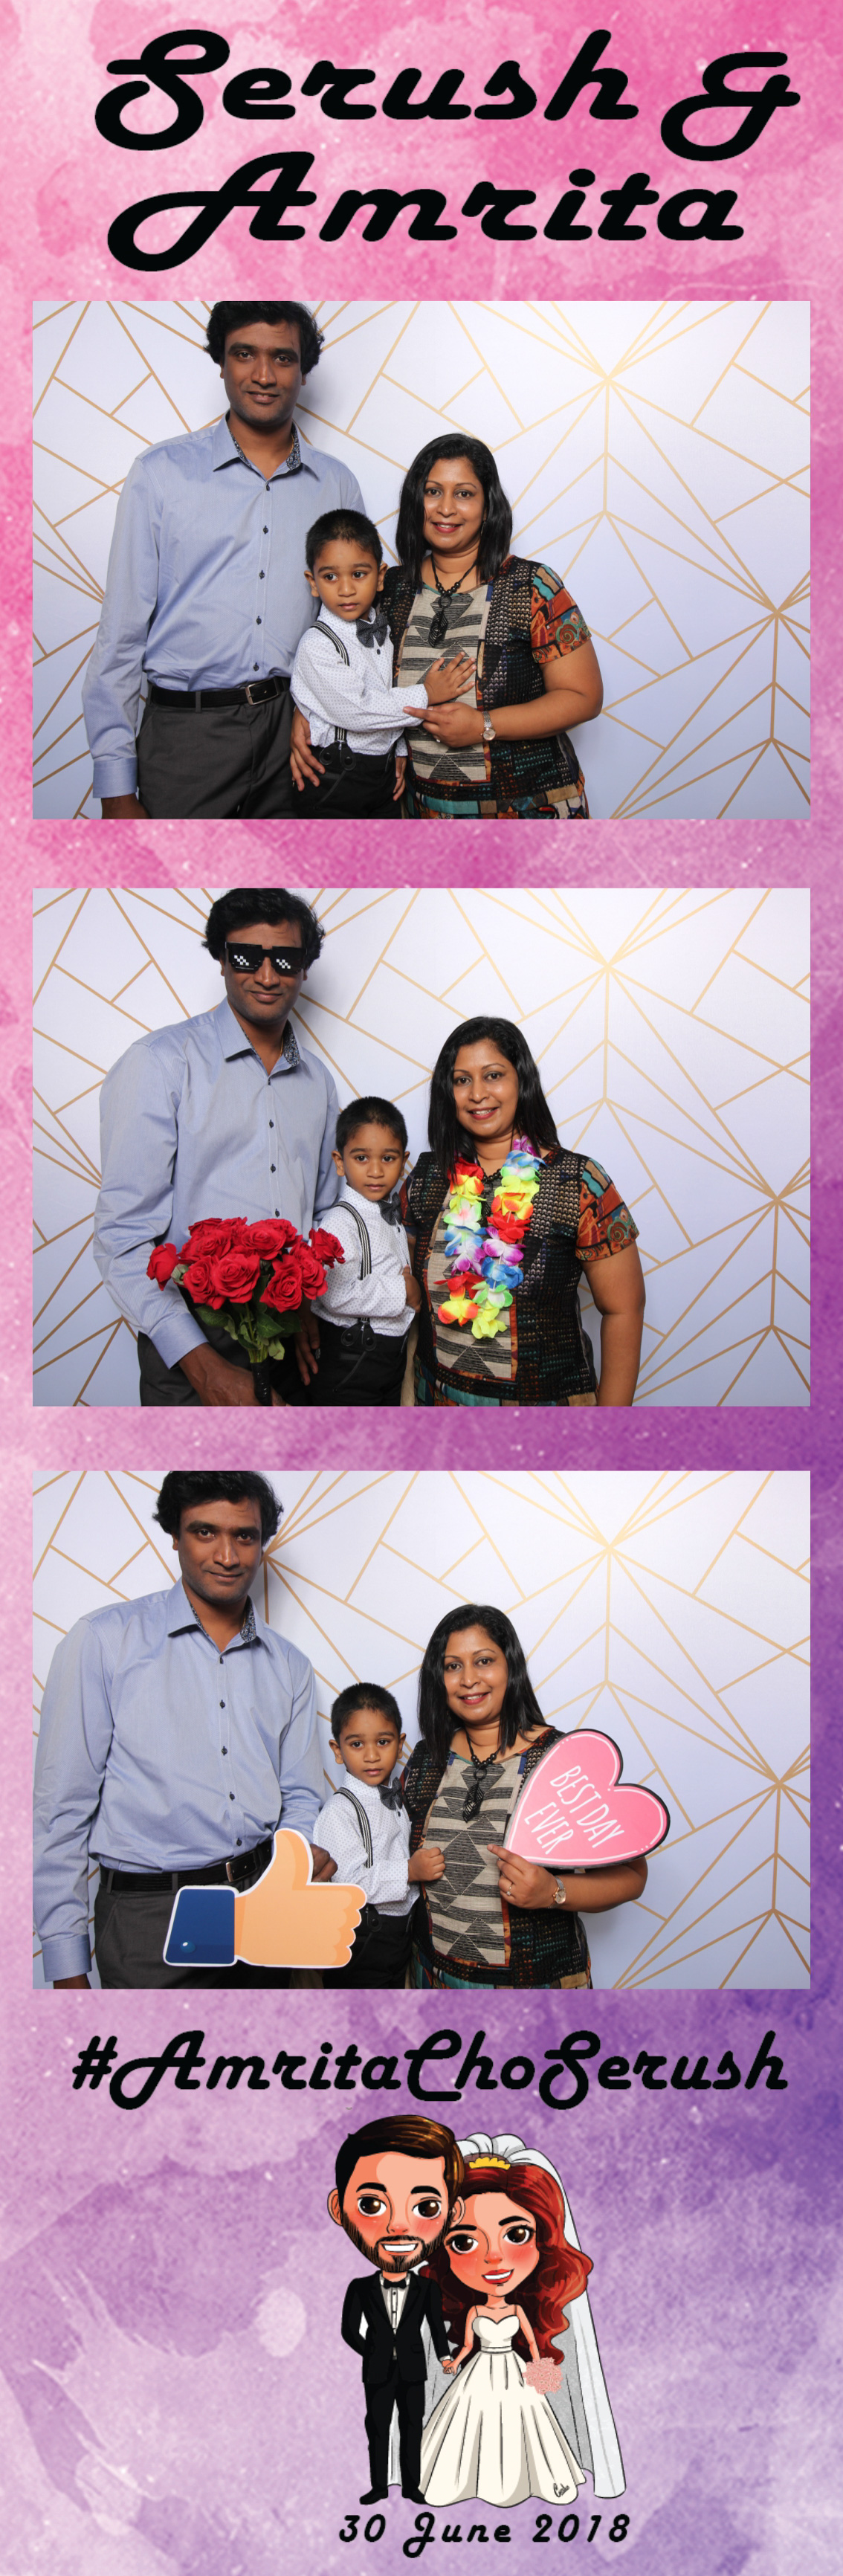 whoots photo booth singapore wedding (5